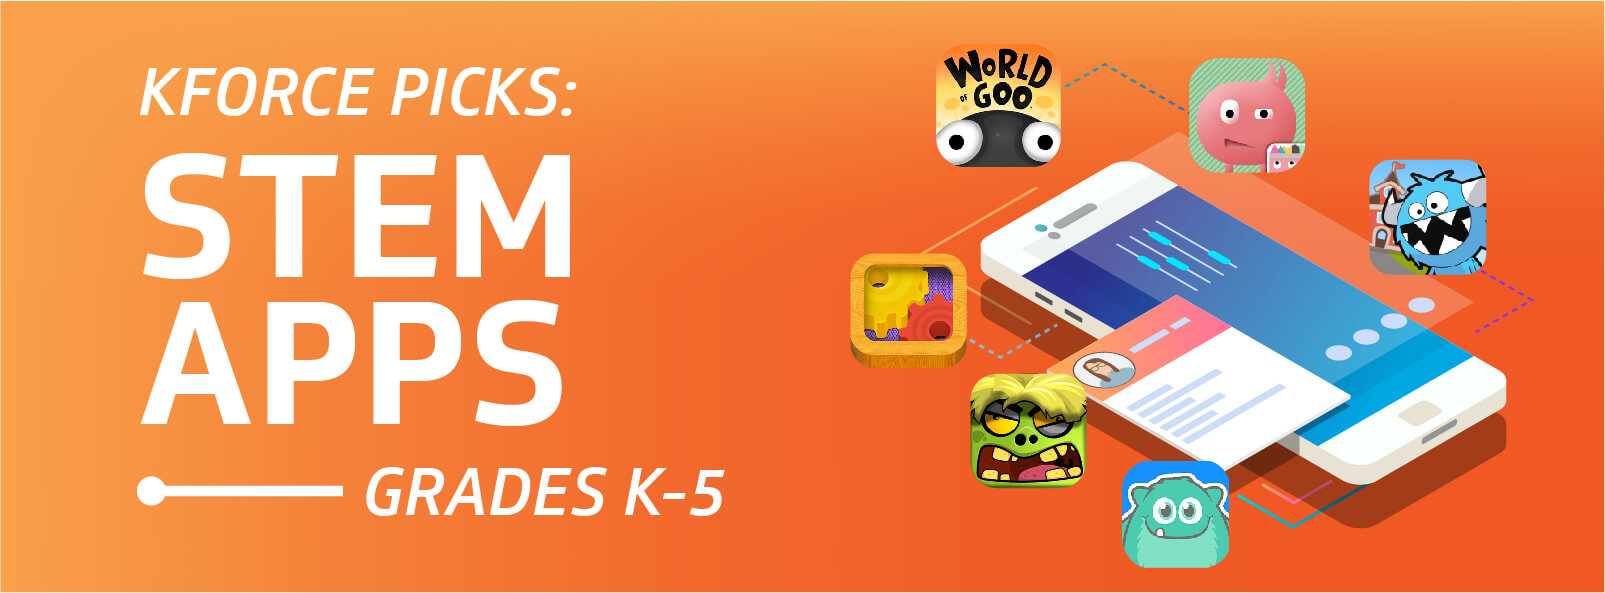 Check Out Our Picks for the Top STEM Apps: Grades K-5